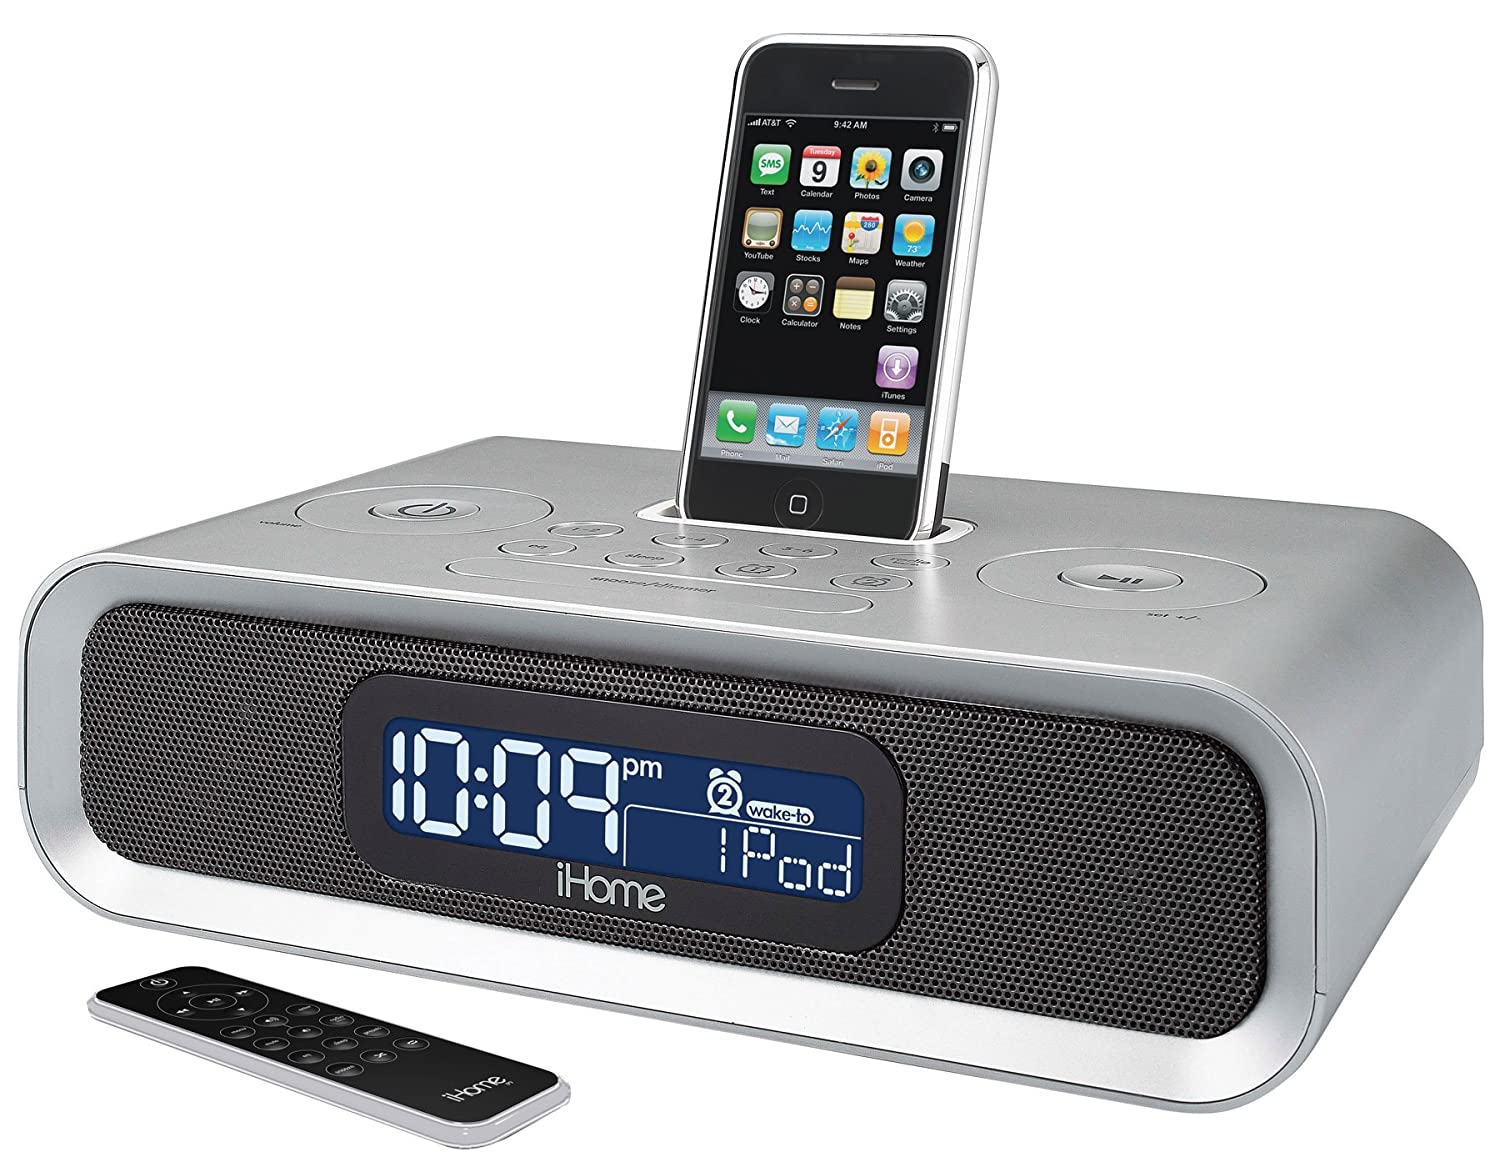 amazon com ihome ip97 dual alarm clock radio for ipod and iphone rh amazon com User Manual for iHome iHome Instruction Manual